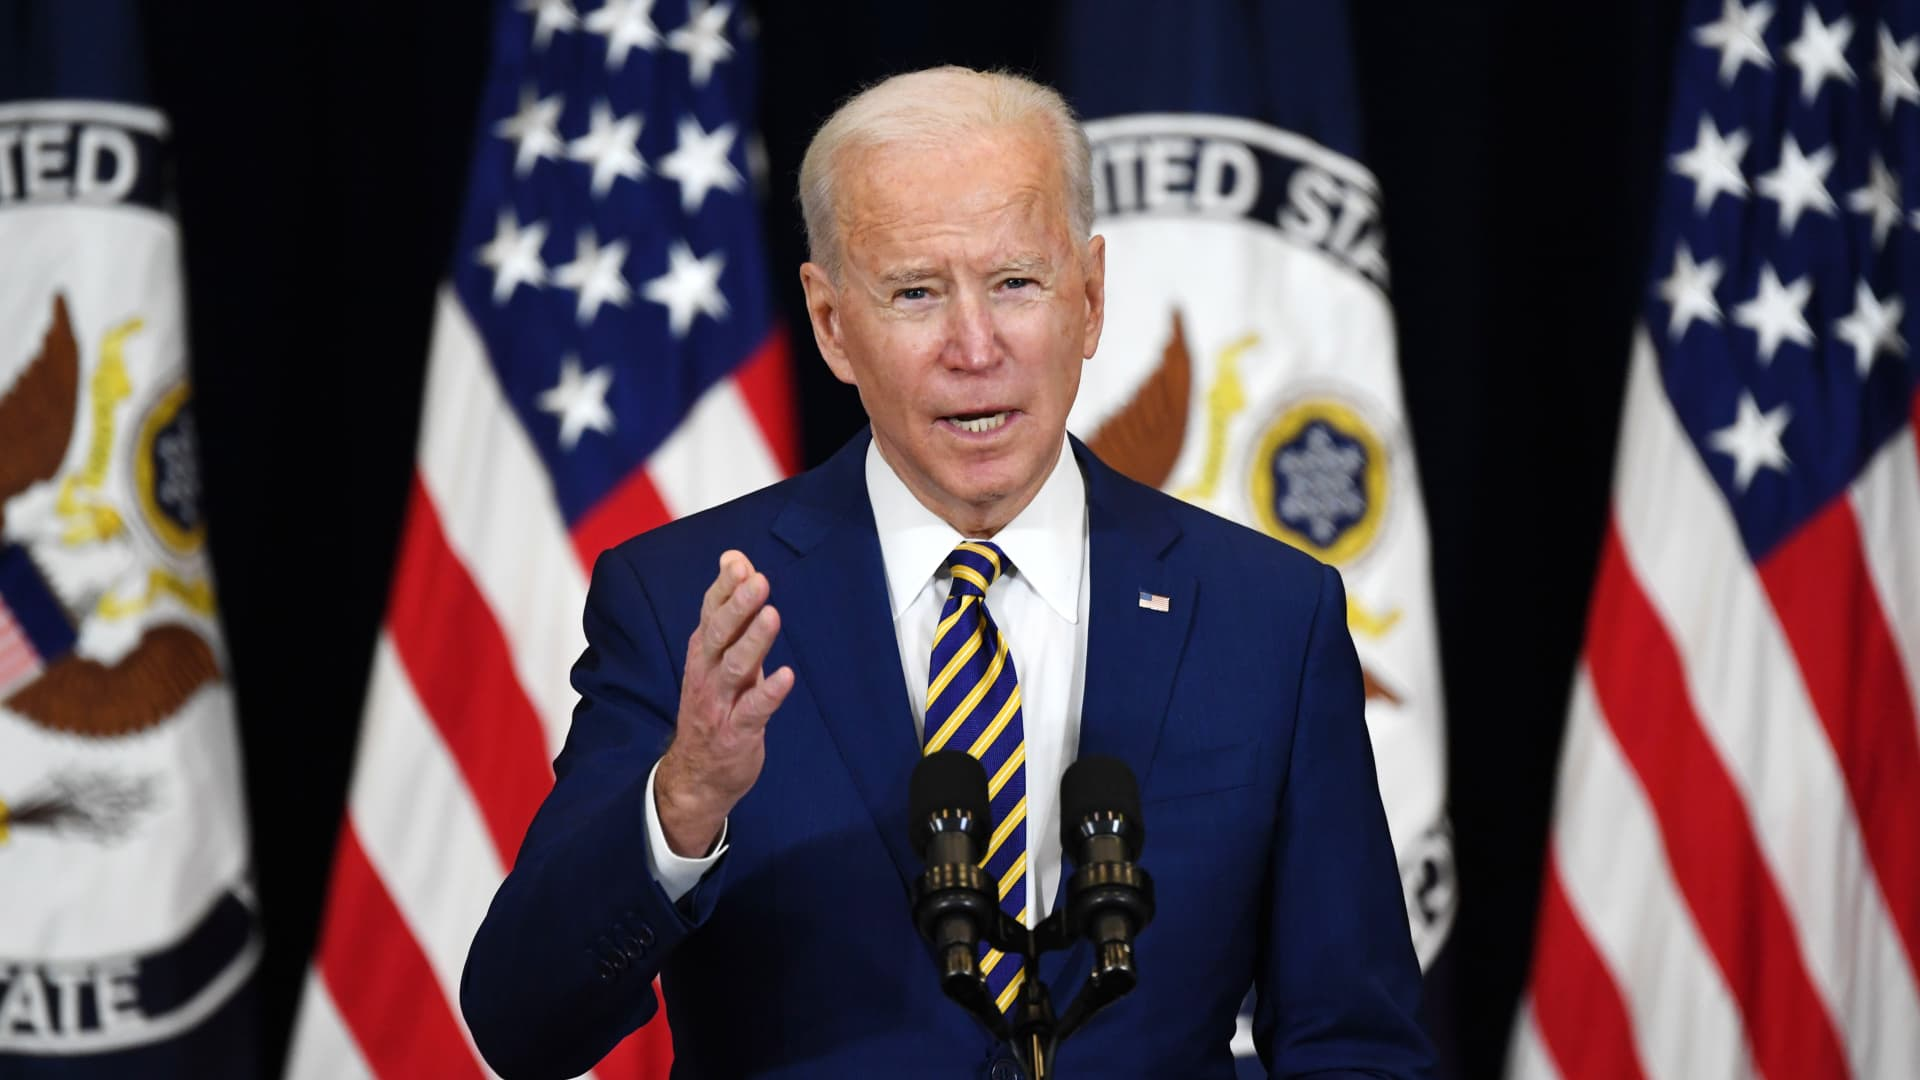 President Joe Biden speaks to staff of the US State Department during his first visit in Washington, DC, February 4, 2021.